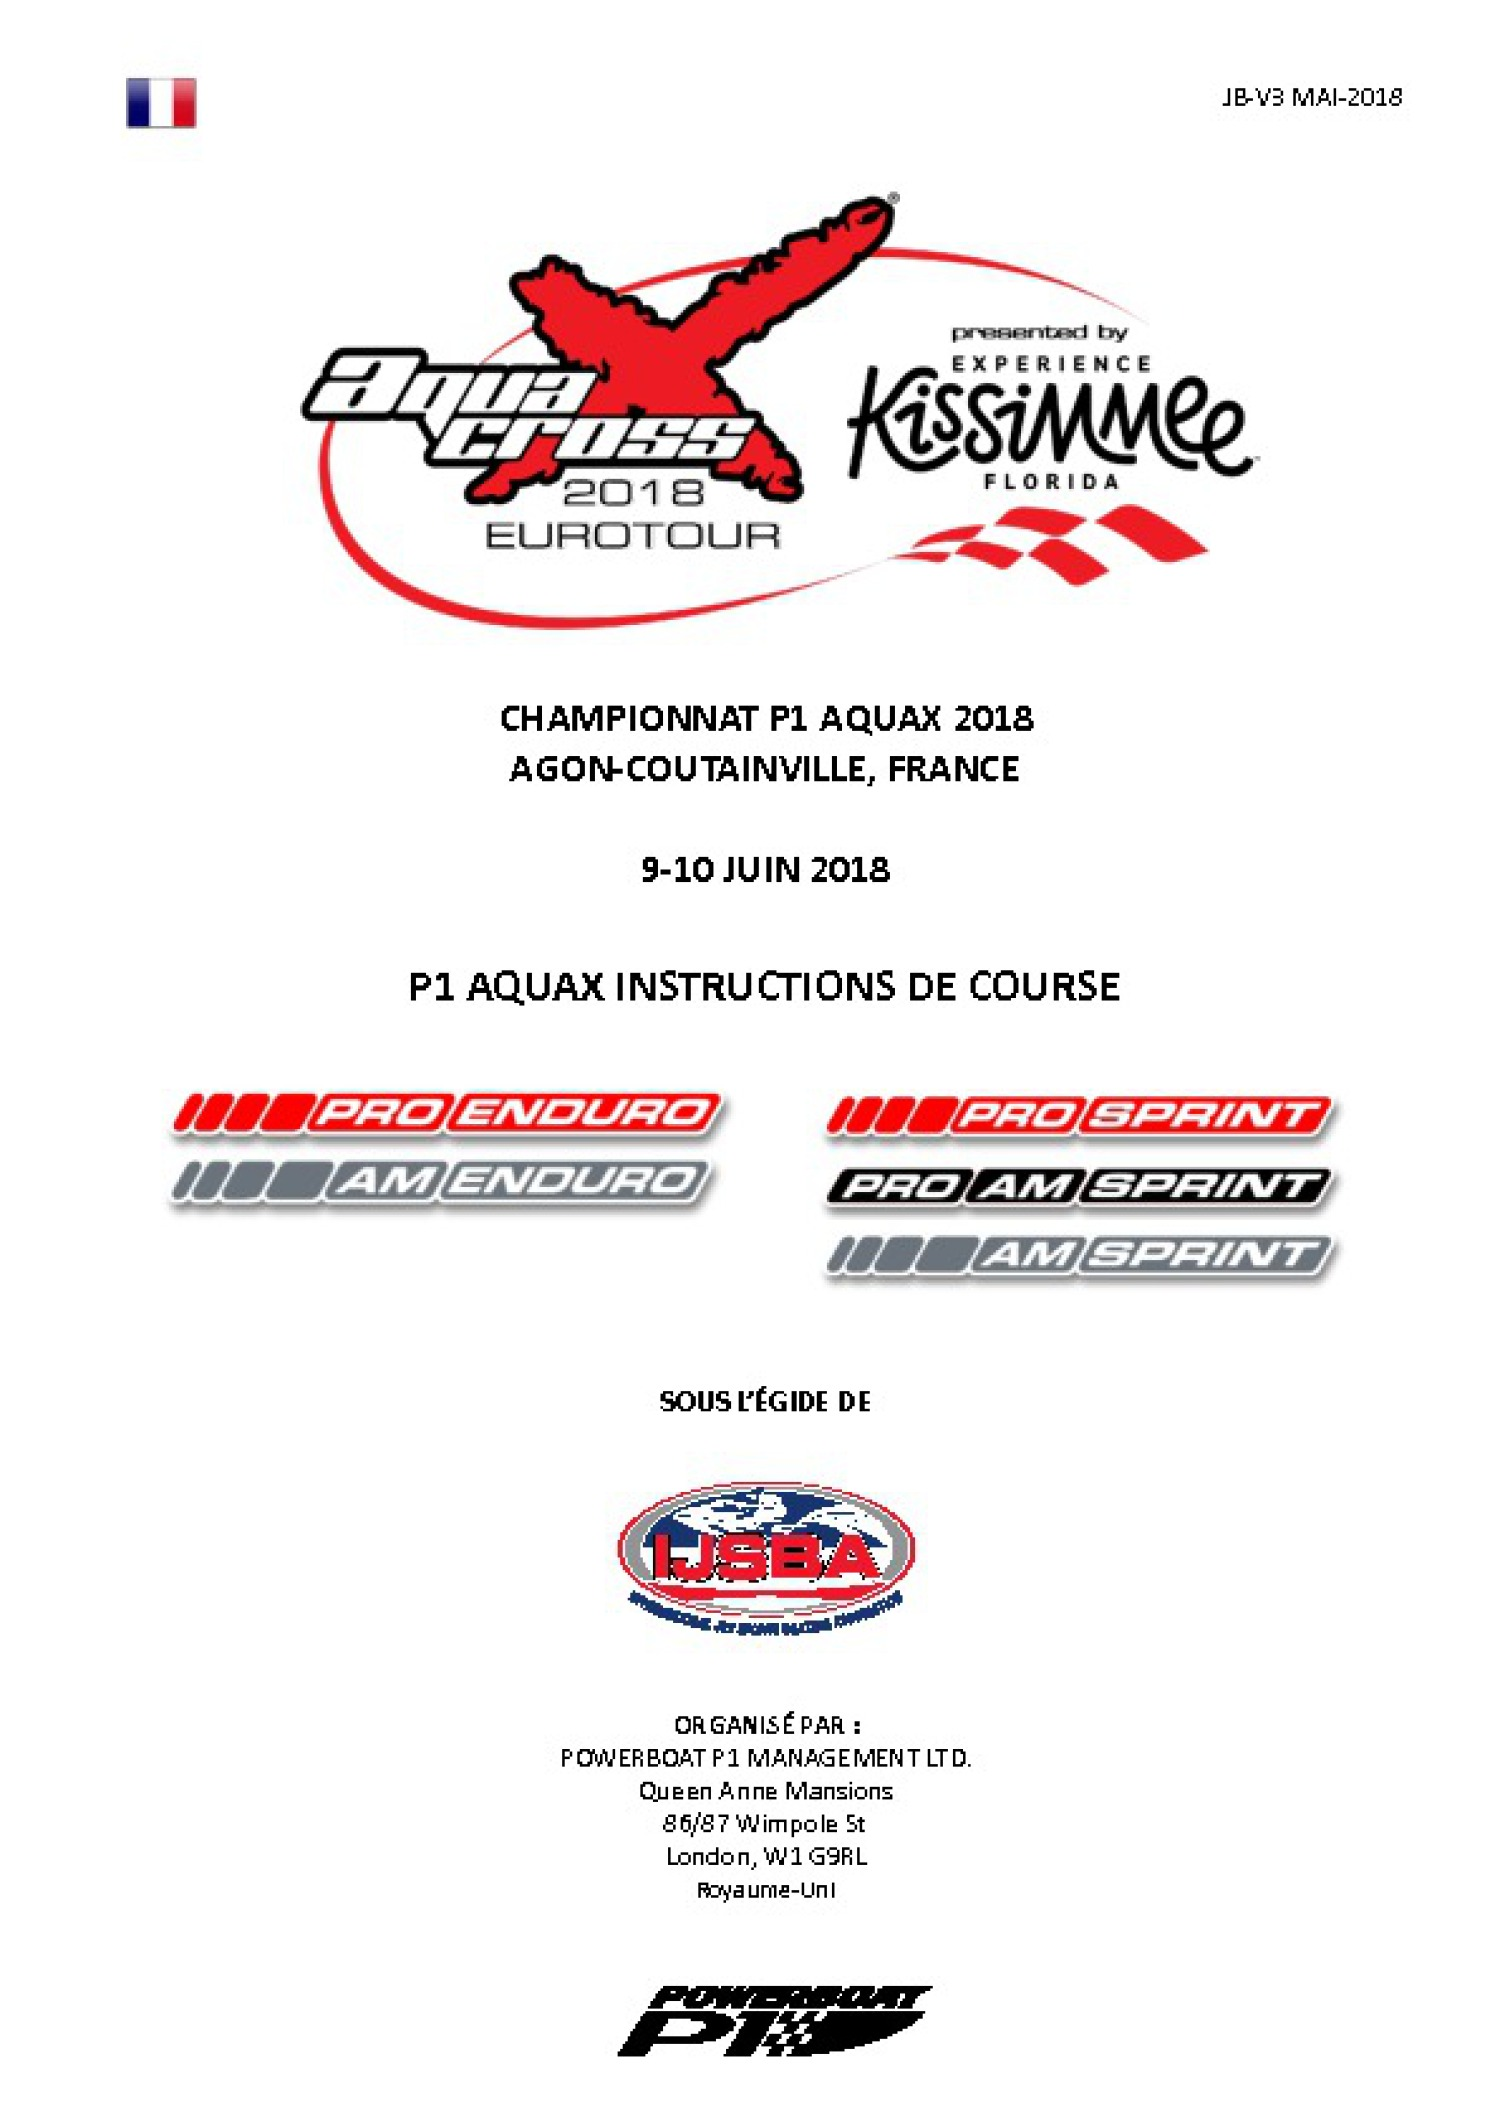 Agon-Coutainville / Instructions de course en FRA